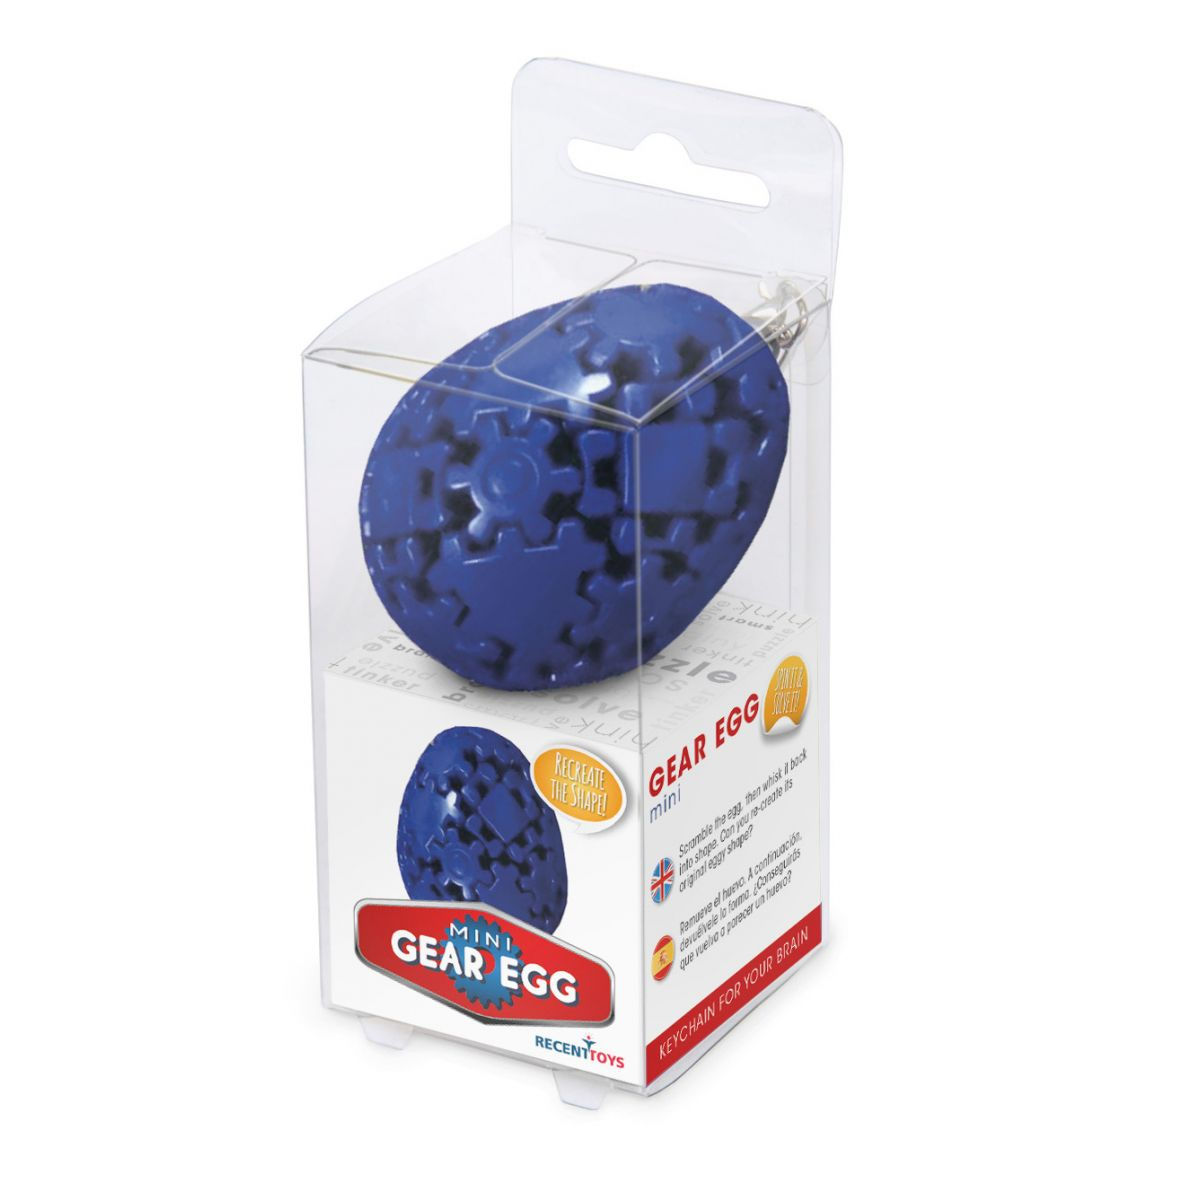 Recent Toys Hlavolam Mini Gear Egg